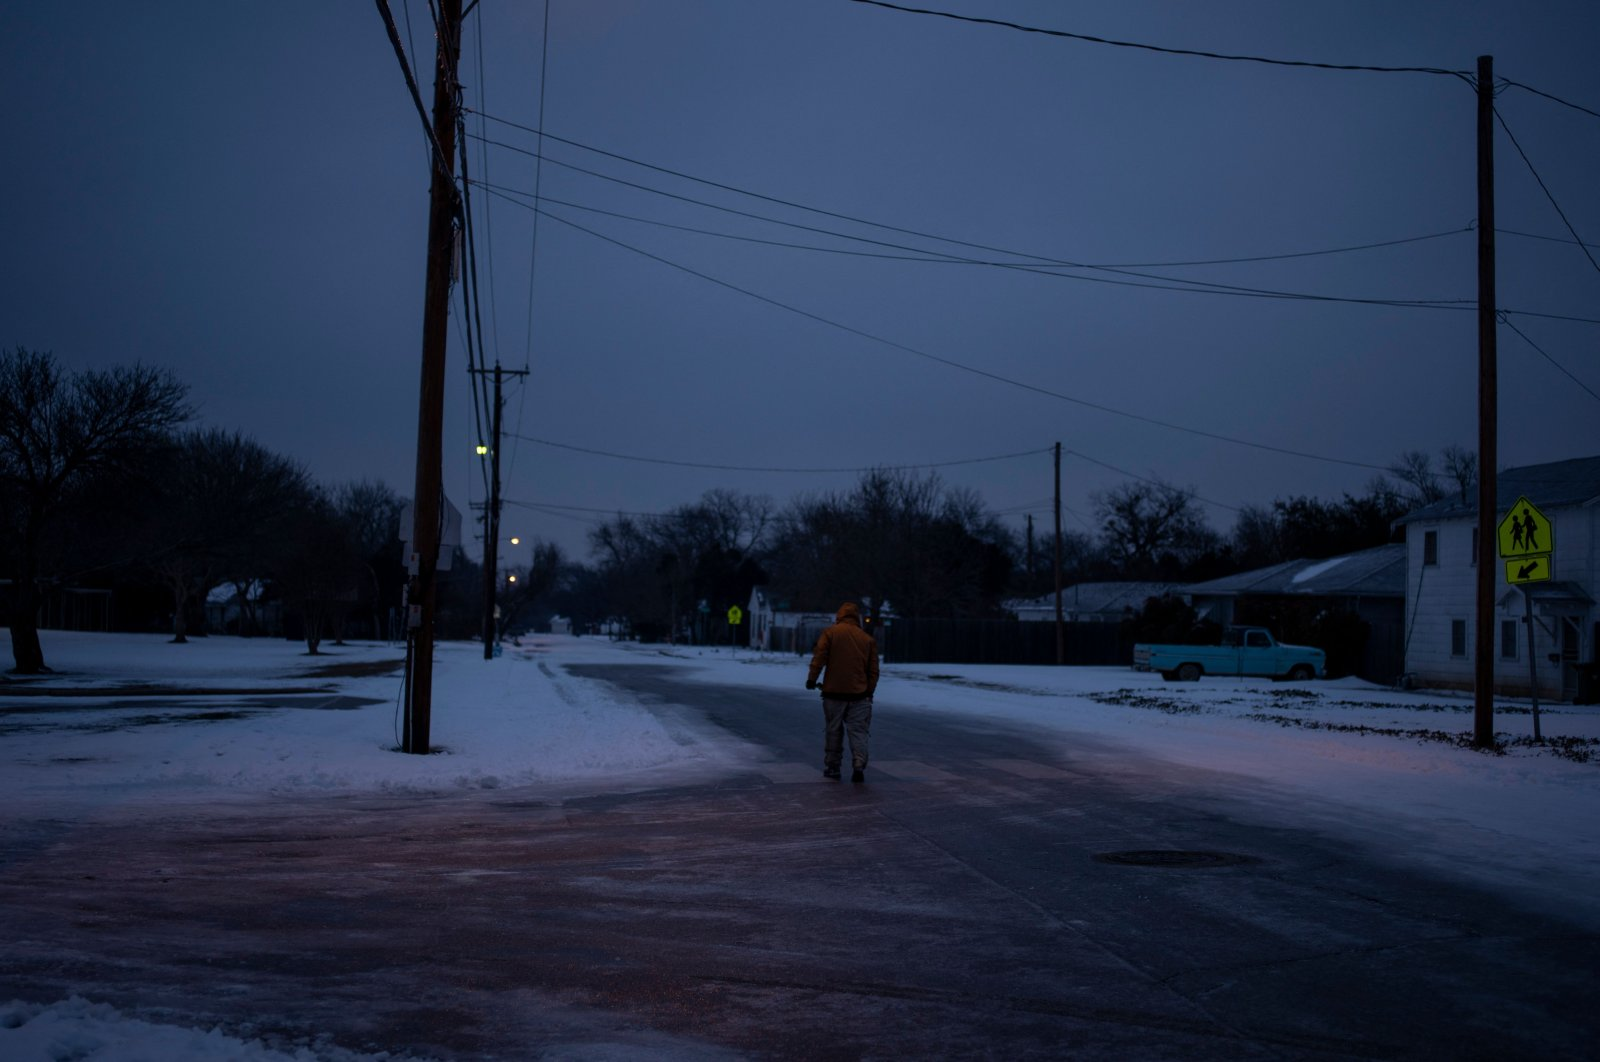 Charles Andrews, 57, walks home through his neighborhood in Waco, Texas as severe winter weather conditions over the last few days have forced road closures and power outages over the state, Feb. 17, 2021. (AFP Photo)